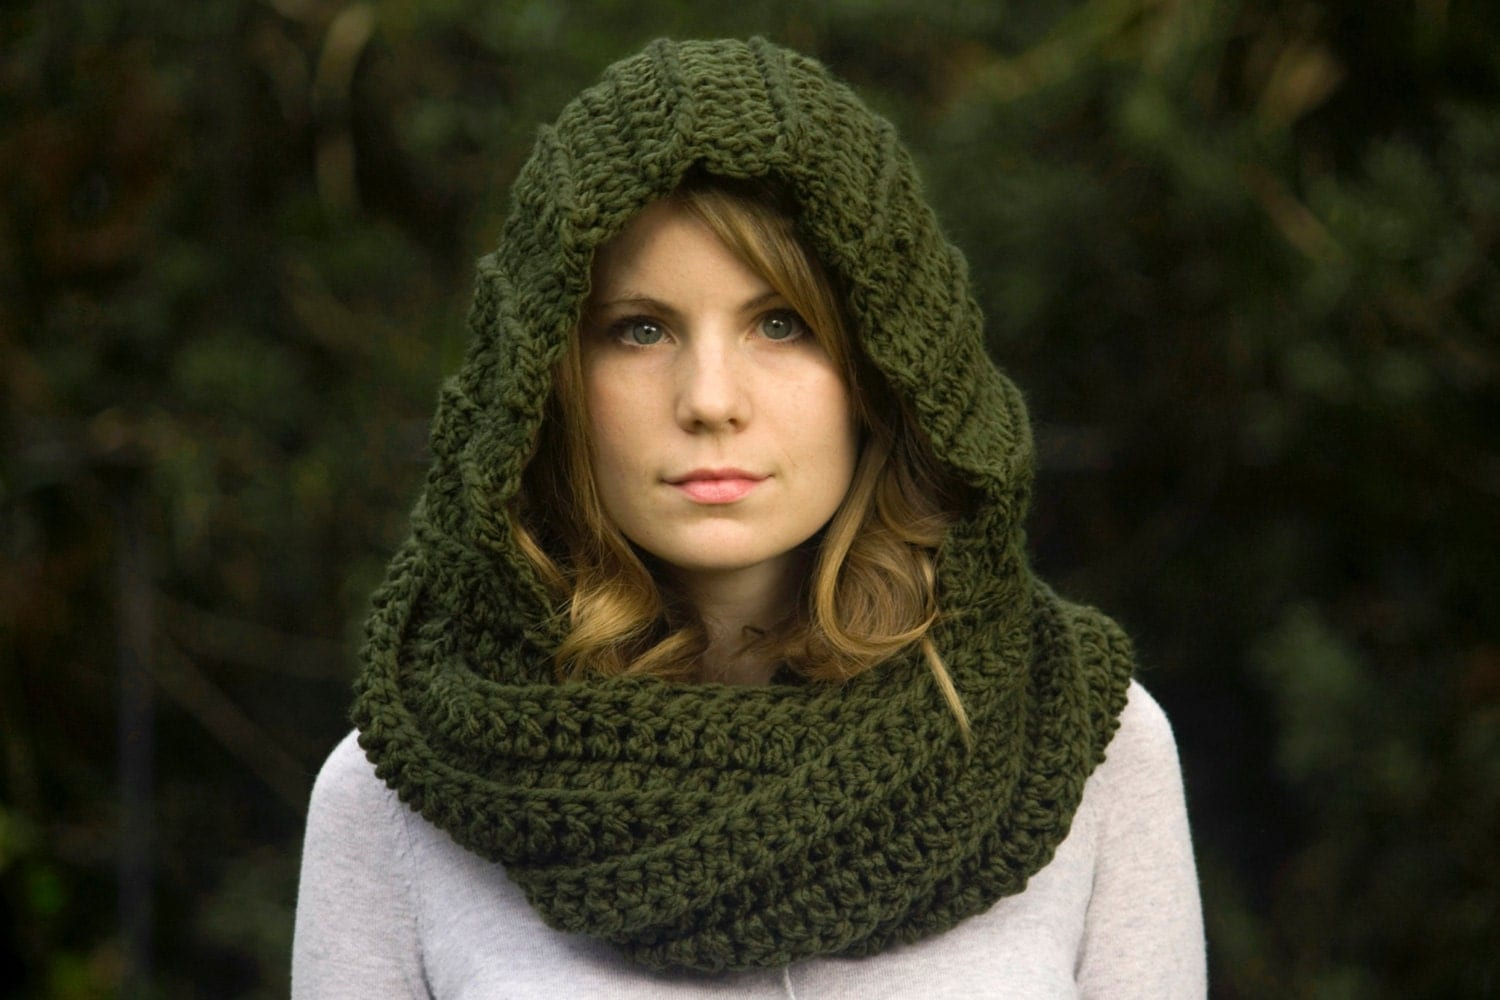 Free Knitting Pattern Hooded Scarf Pockets : Hooded scarf - deals on 1001 Blocks